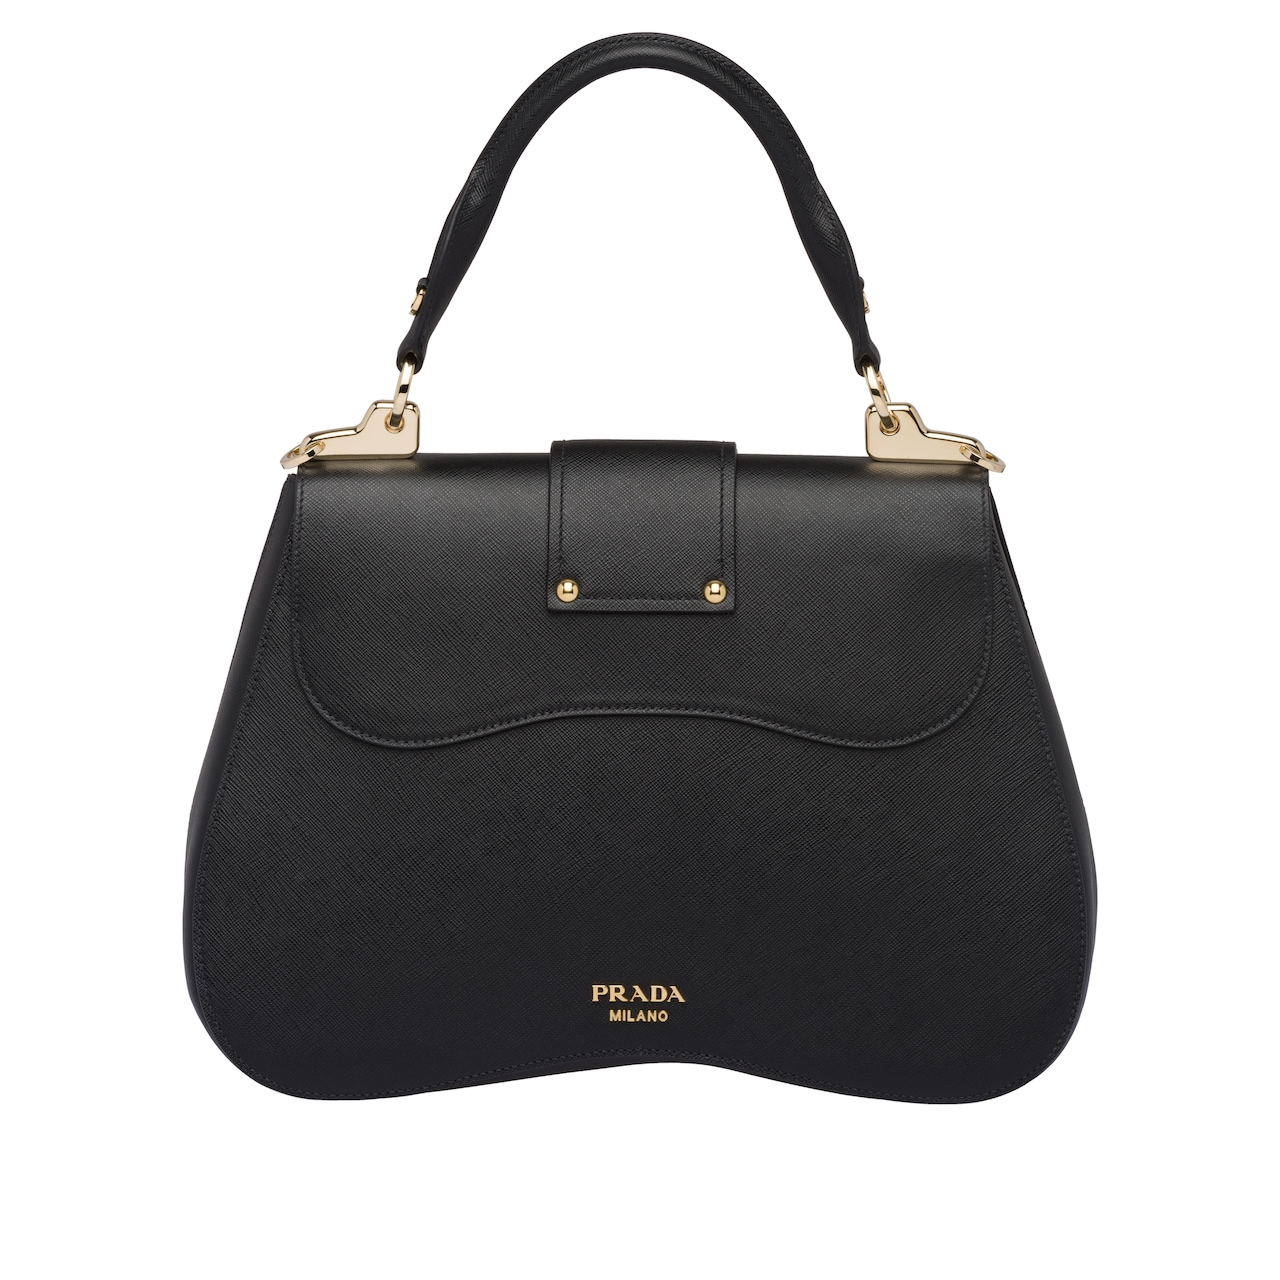 67d626e17b7f ... the Prada Sidonie bag are renewed in the large Saffiano version - with  metal hardware and a refined leather name tag - that preserves the  distinctive ...